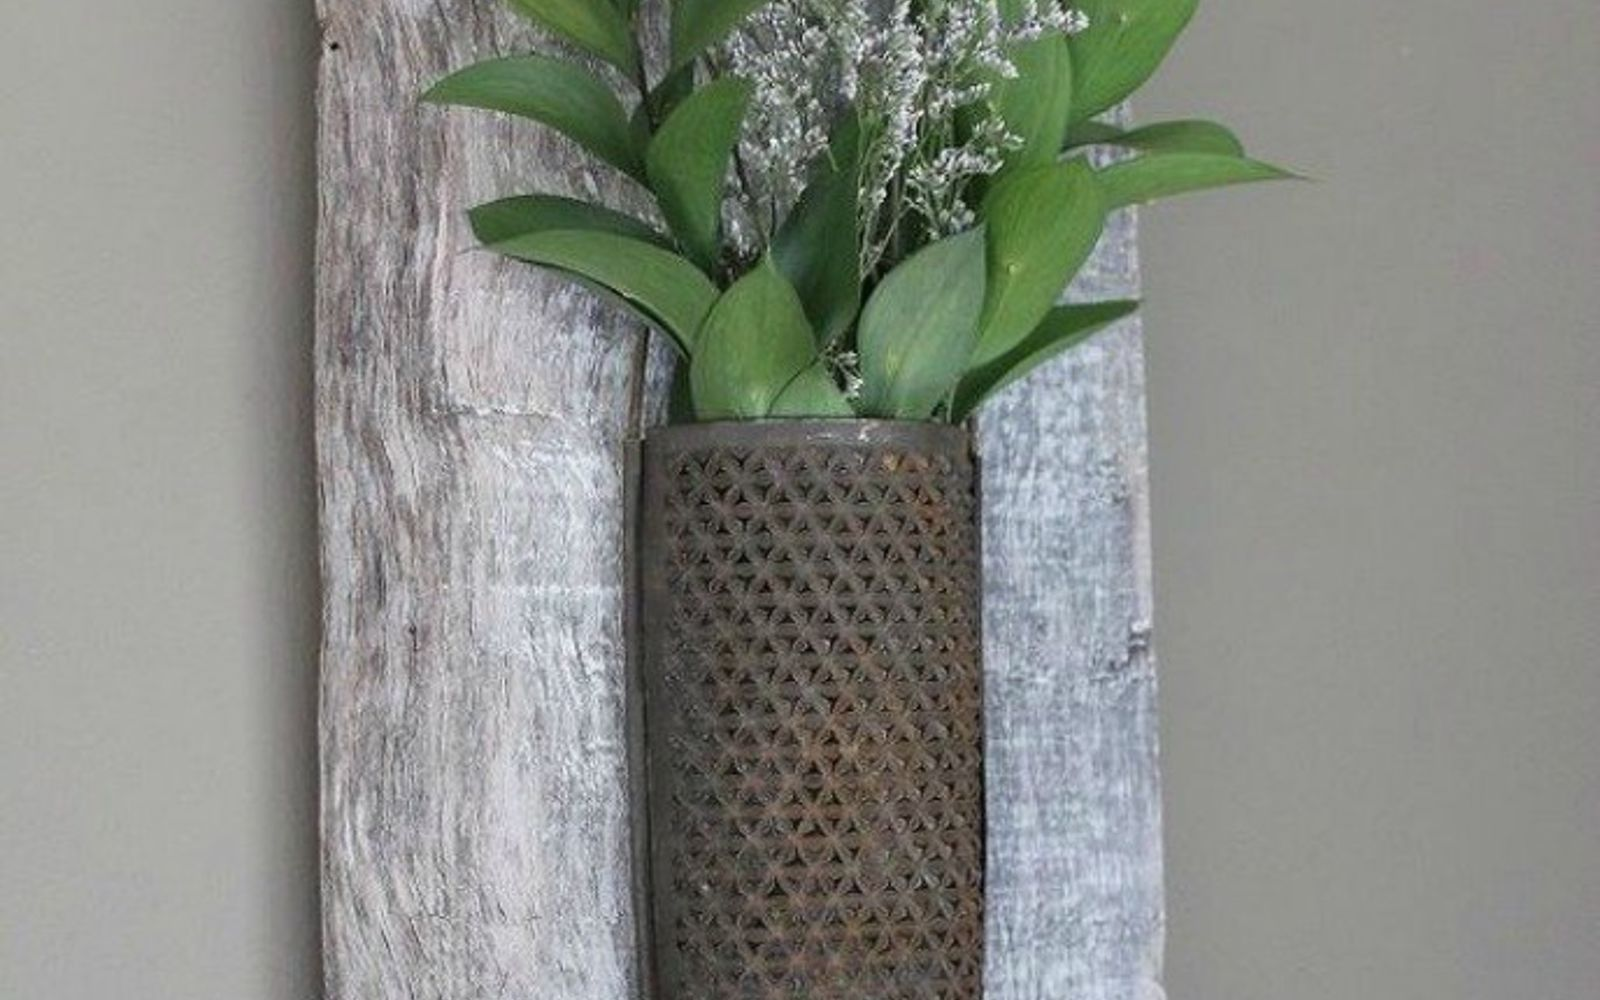 s 13 low budget ways to decorate your living room walls, go green, plumbing, Add some rustic plant wall decor